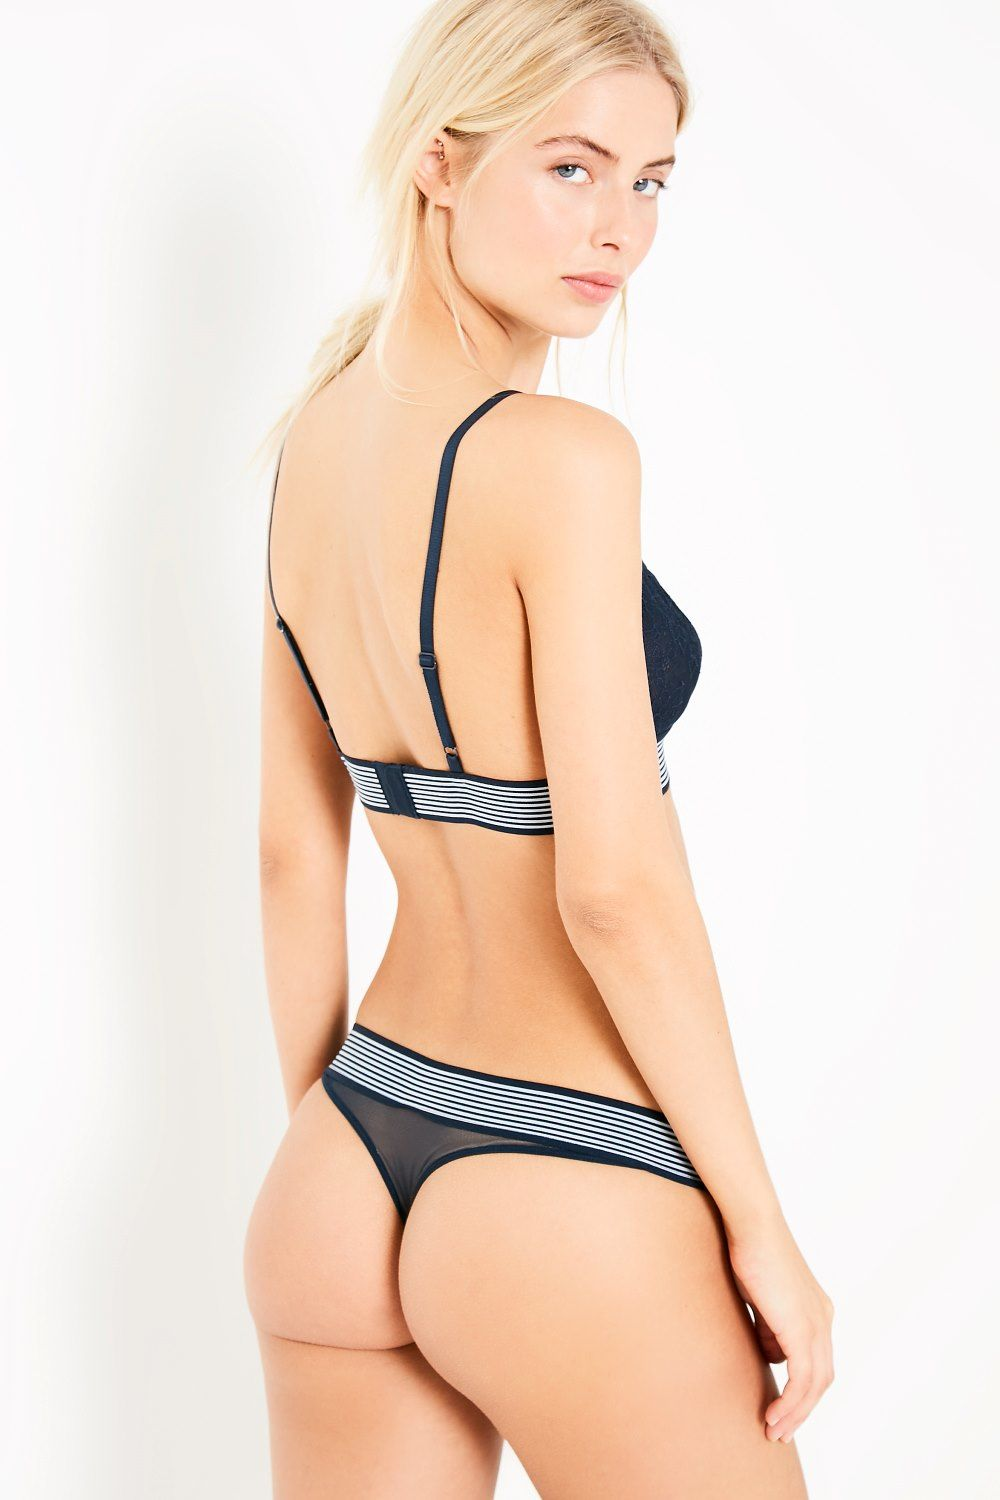 lace strip thong - £12.95 Jack Wills